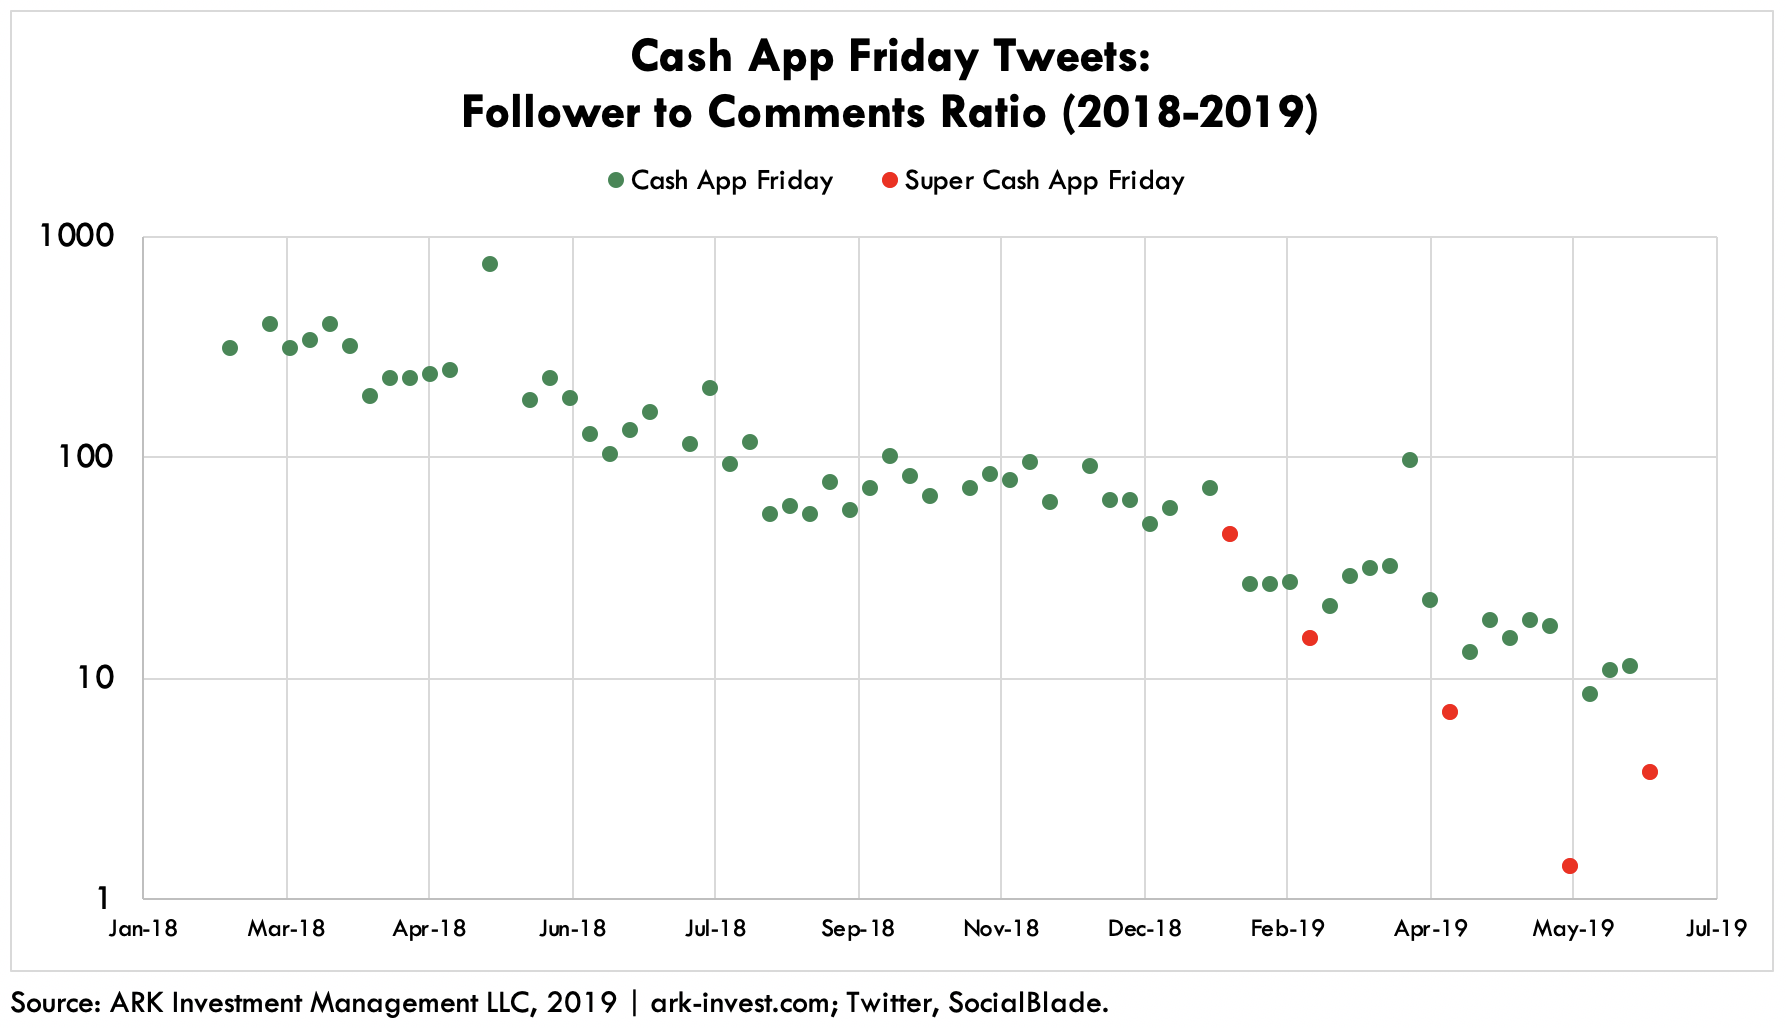 Cash App Twitter Friday Tweets Follower to Comments Ratio